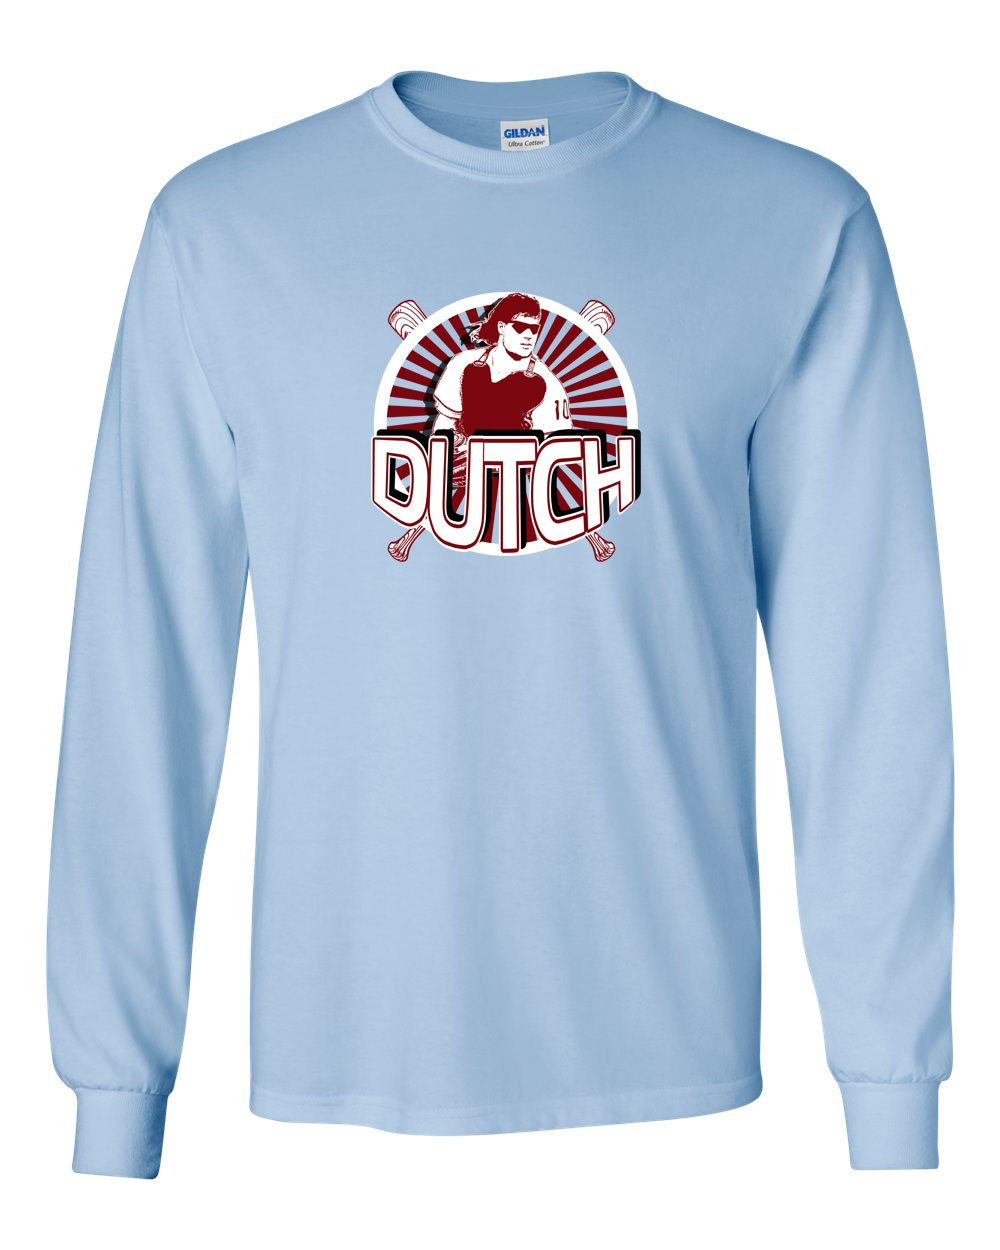 Dutch MENS Long Sleeve Heavy Cotton T-Shirt